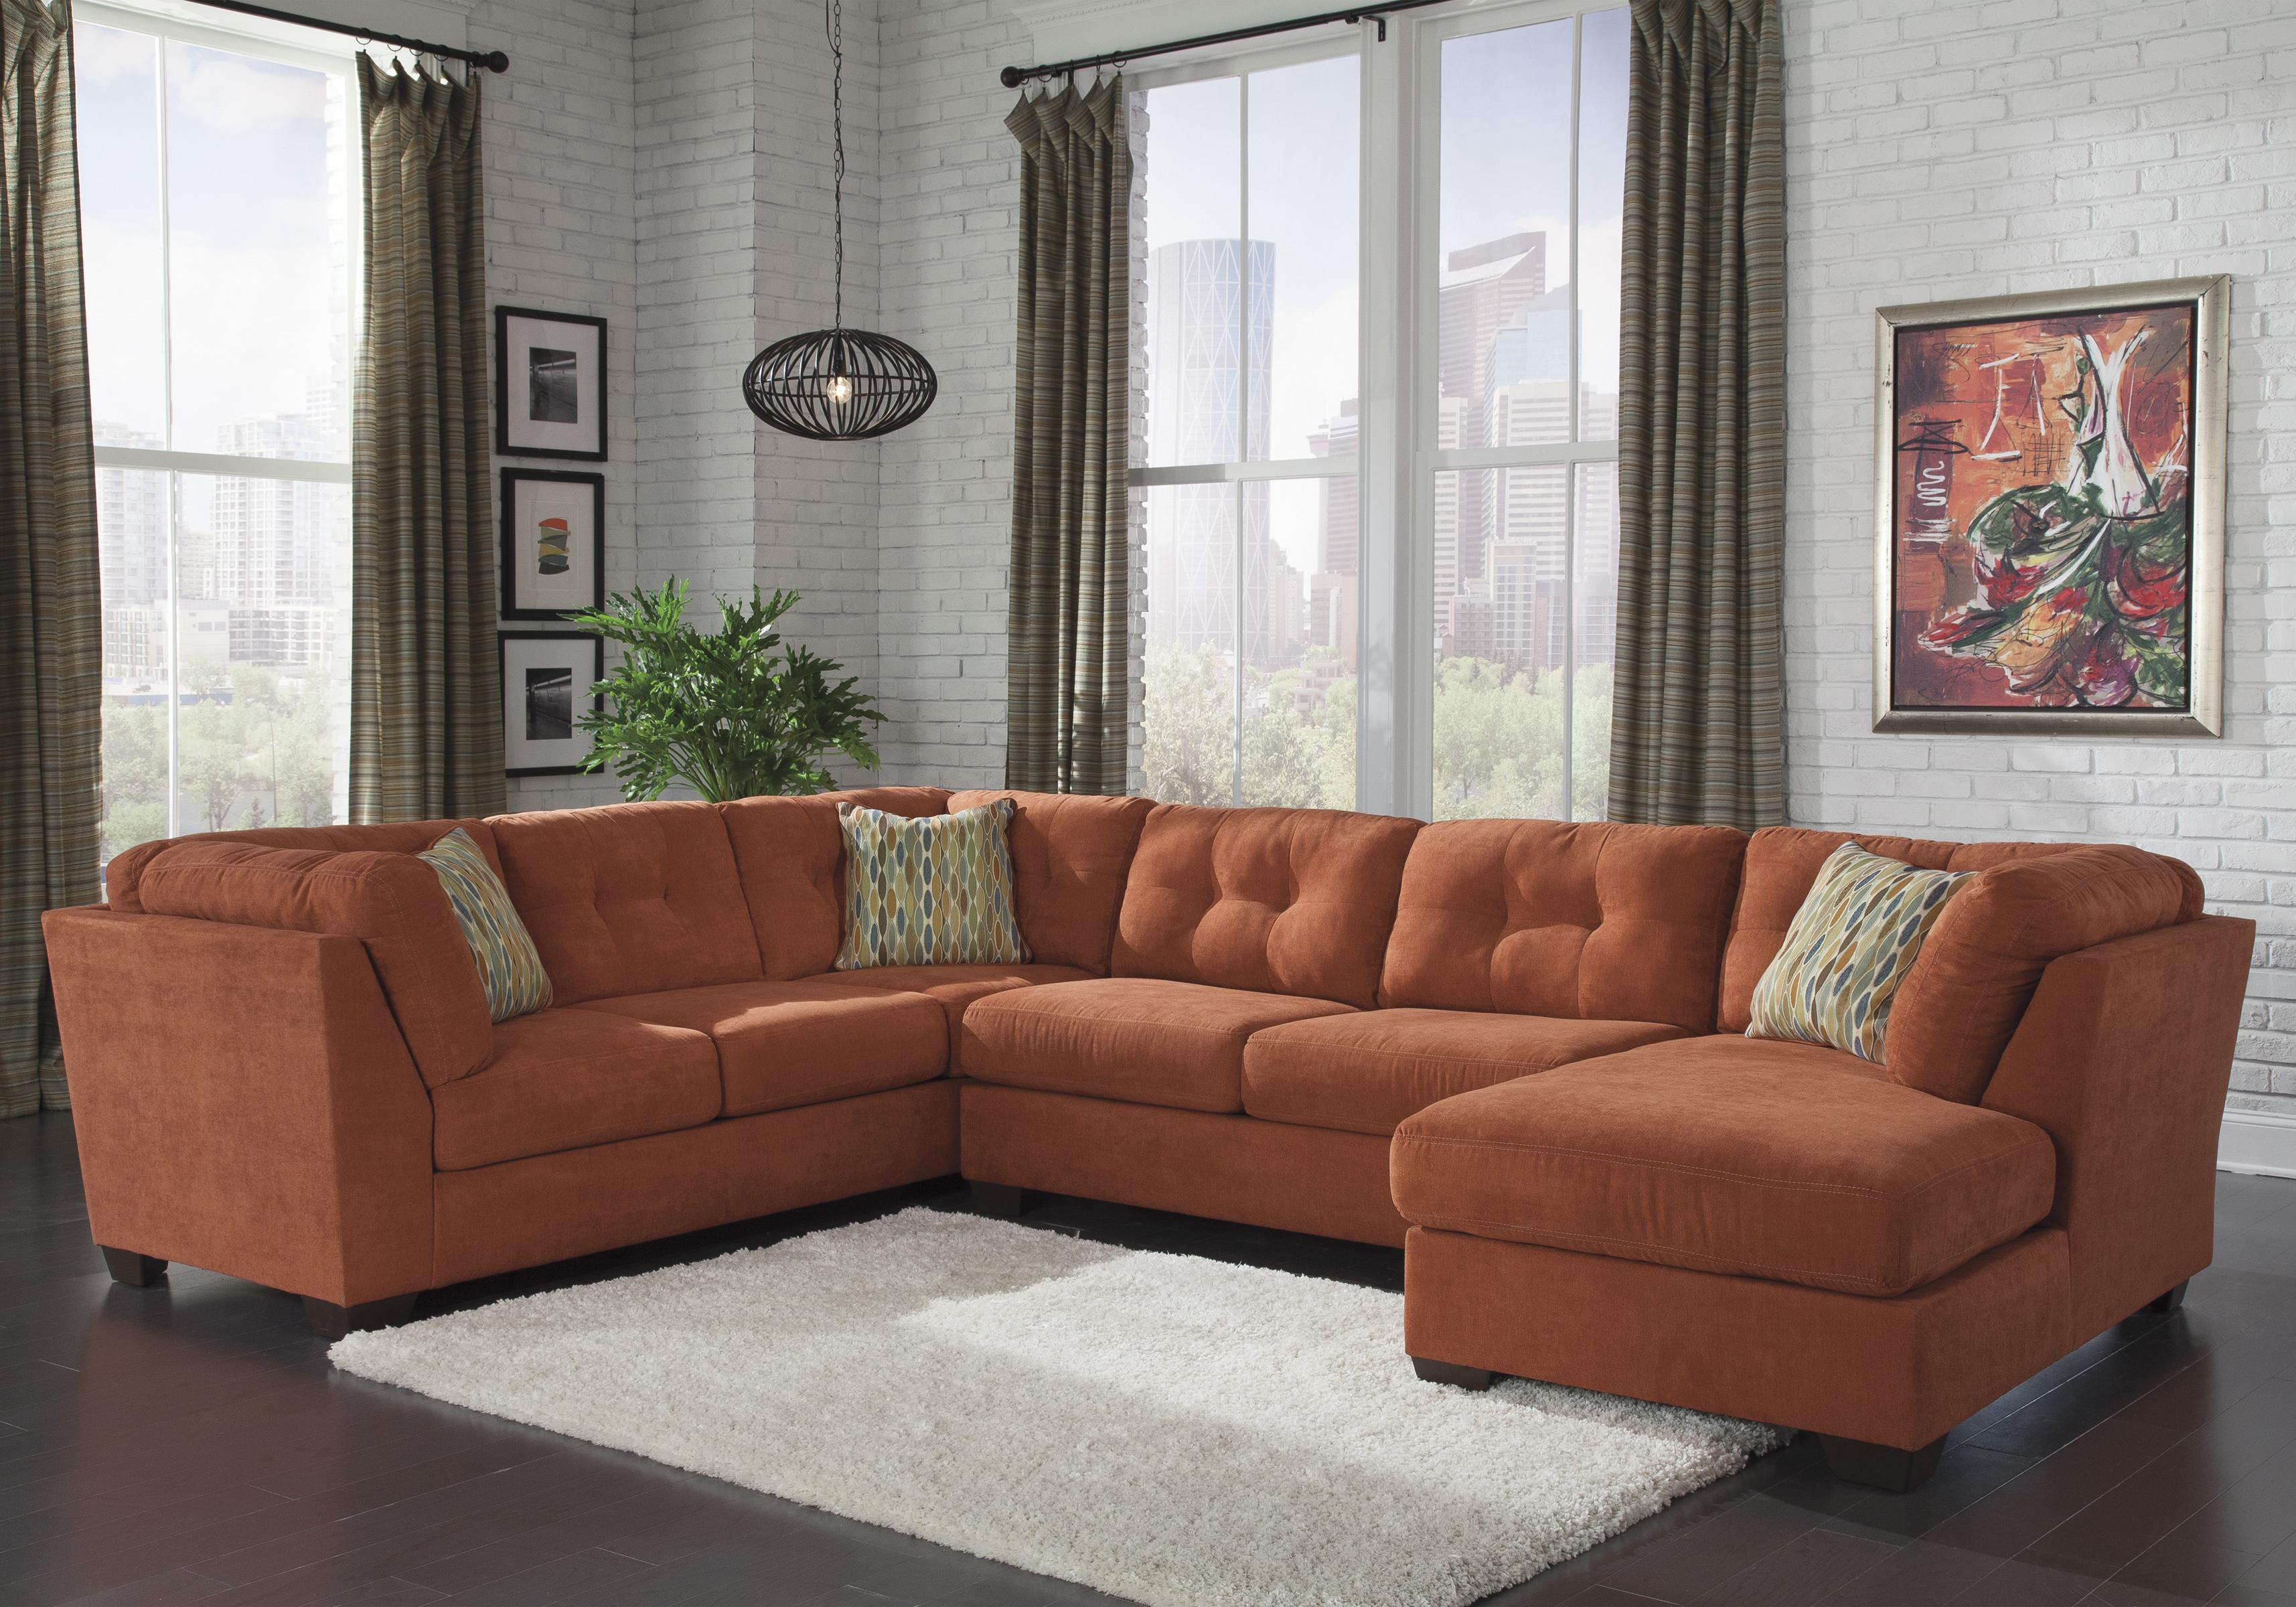 Benchcraft Delta City - Rust 3-Piece Sectional w/ Sleeper & Right Chaise - Item Number: 1970138+71+17